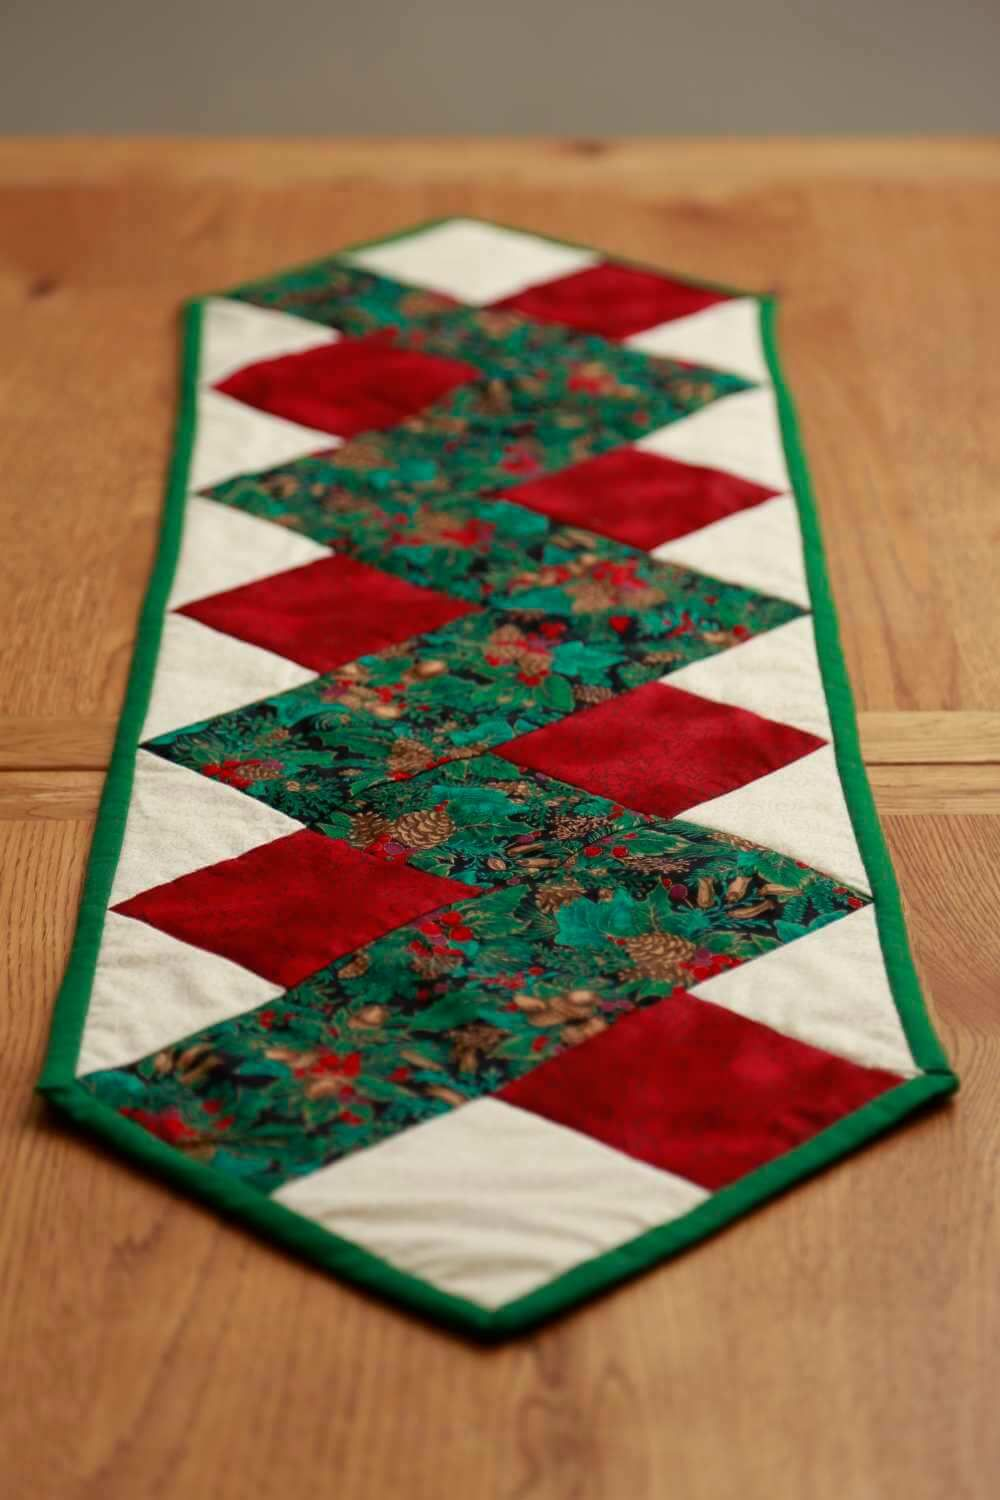 Christmas Table Runner Quilt.Zig Zag Christmas Table Runner Quilt Runners Patchwork